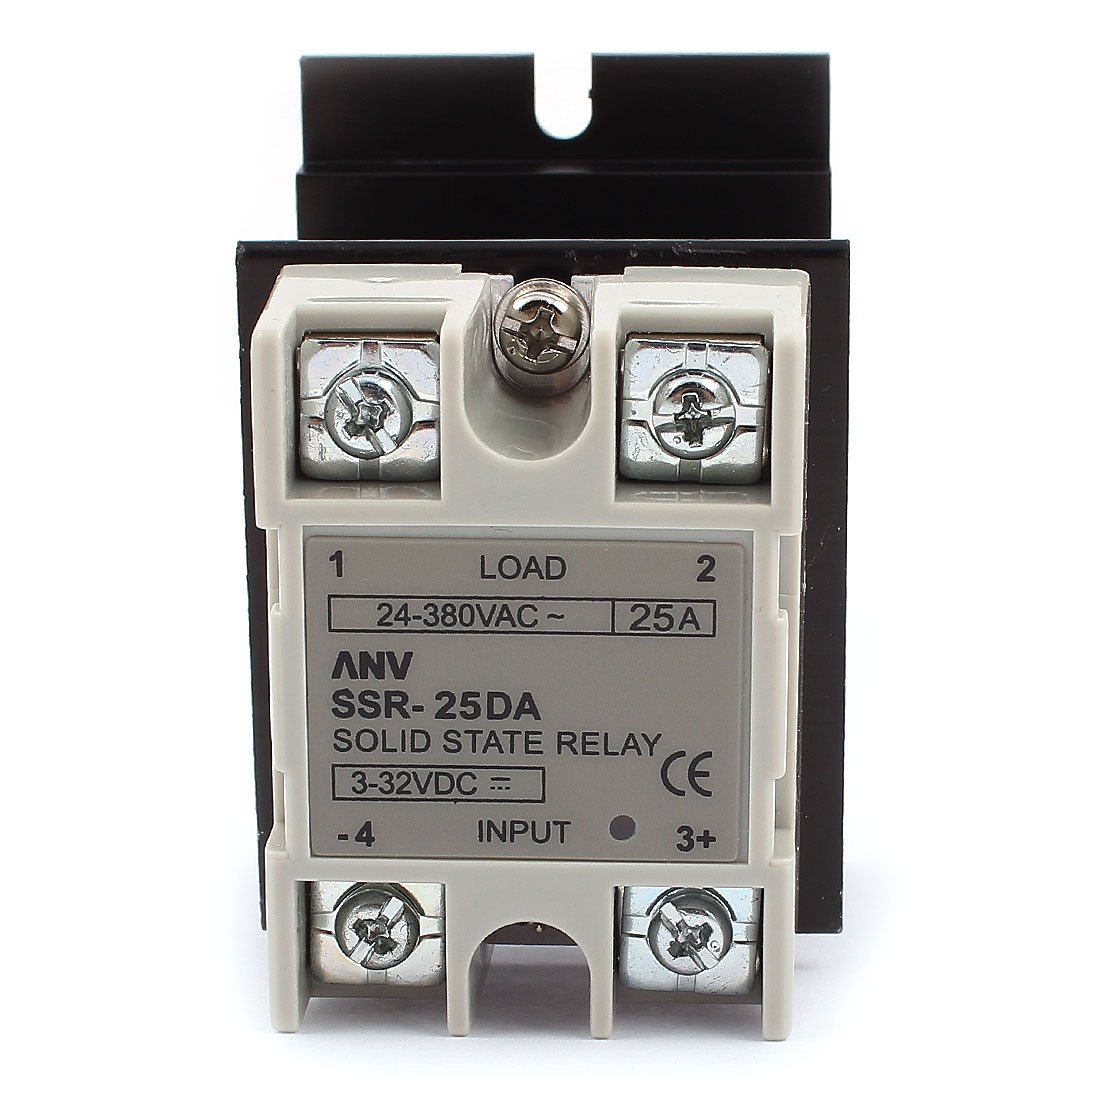 Uxcell a15111100ux0289 SSR-25DA Solid State Relay, DC-AC 25 Amp, 3-32V DC/24-380V AC, Heat Sink